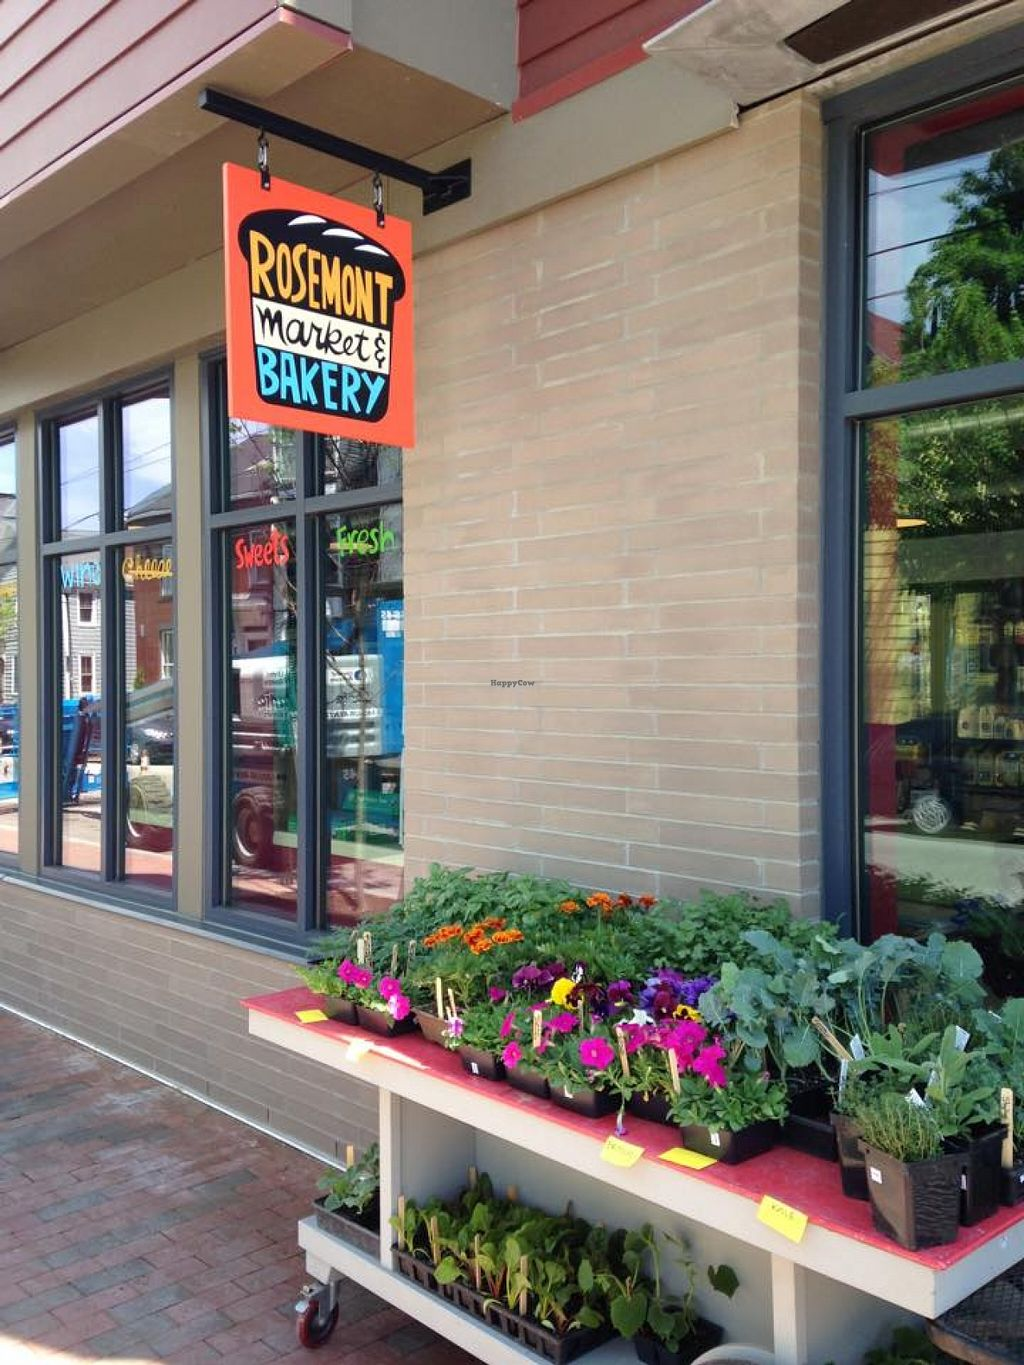 """Photo of Rosemont Market  by <a href=""""/members/profile/community"""">community</a> <br/>Rosemont Market  <br/> October 17, 2015  - <a href='/contact/abuse/image/64408/121592'>Report</a>"""